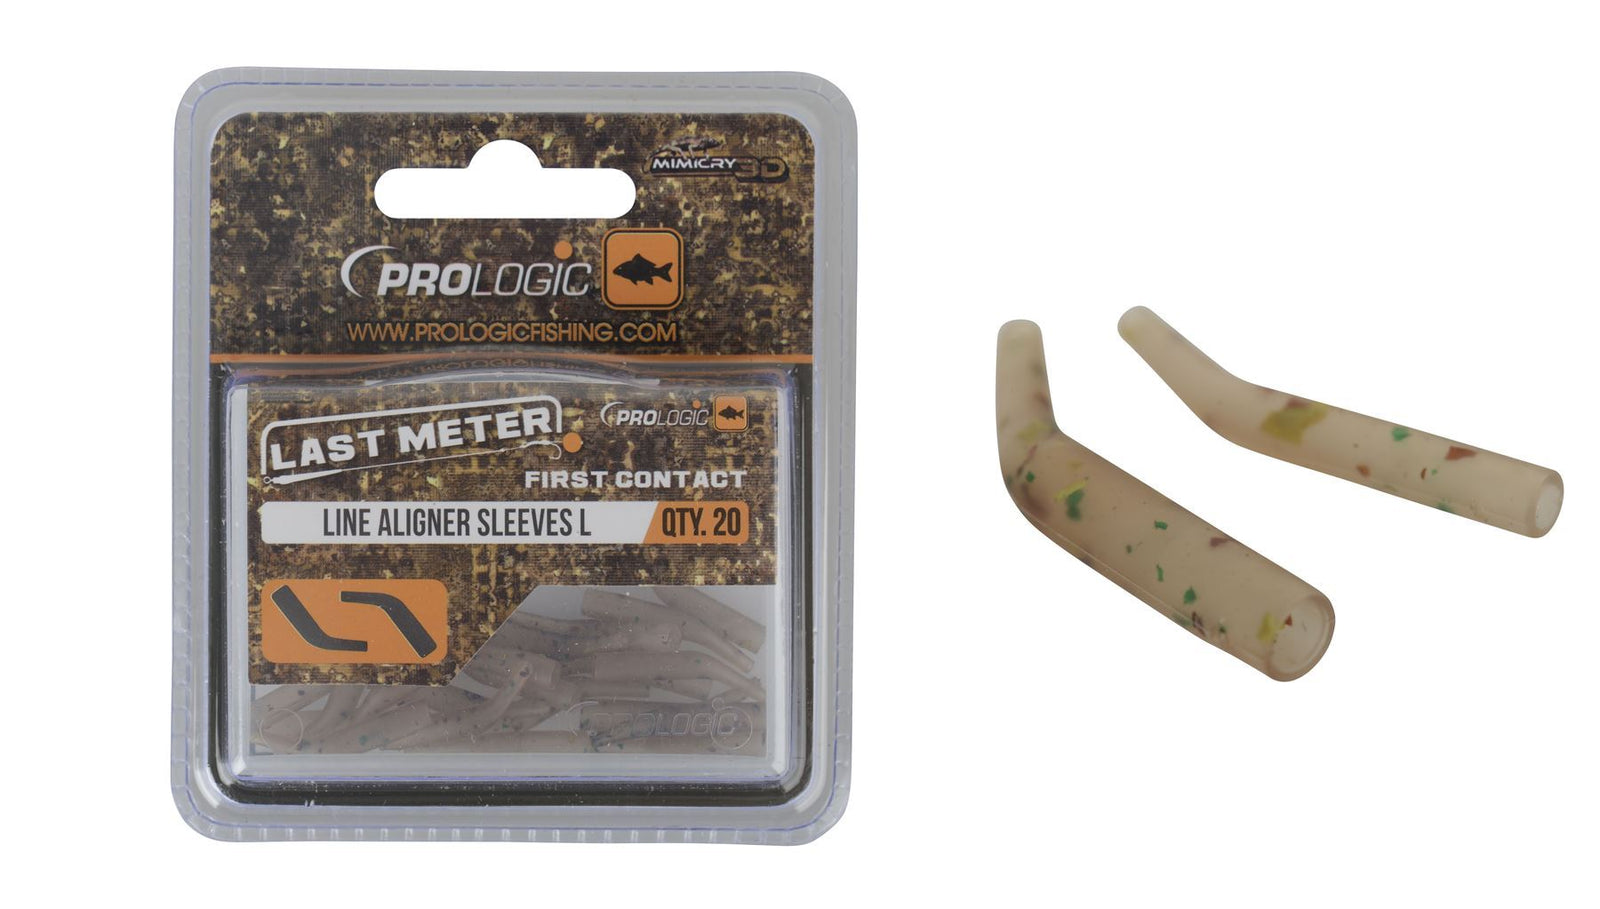 Prologic LM Mimicry Line Aligner Sleeves L 20pcs - reid outdoors